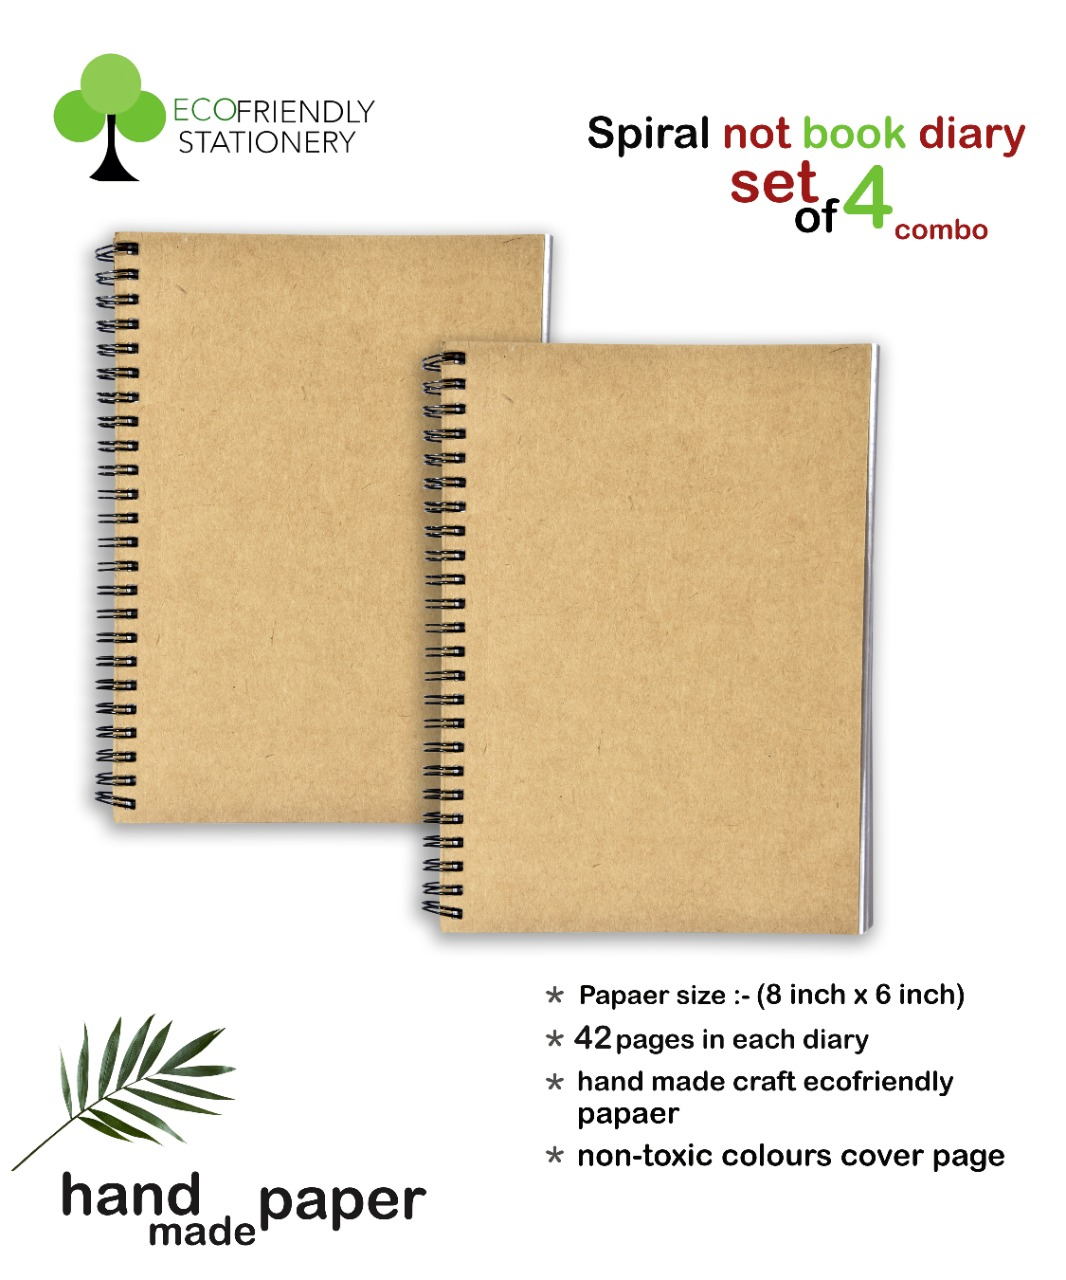 Spiral NoteBooks Diary Set of 4 Combo